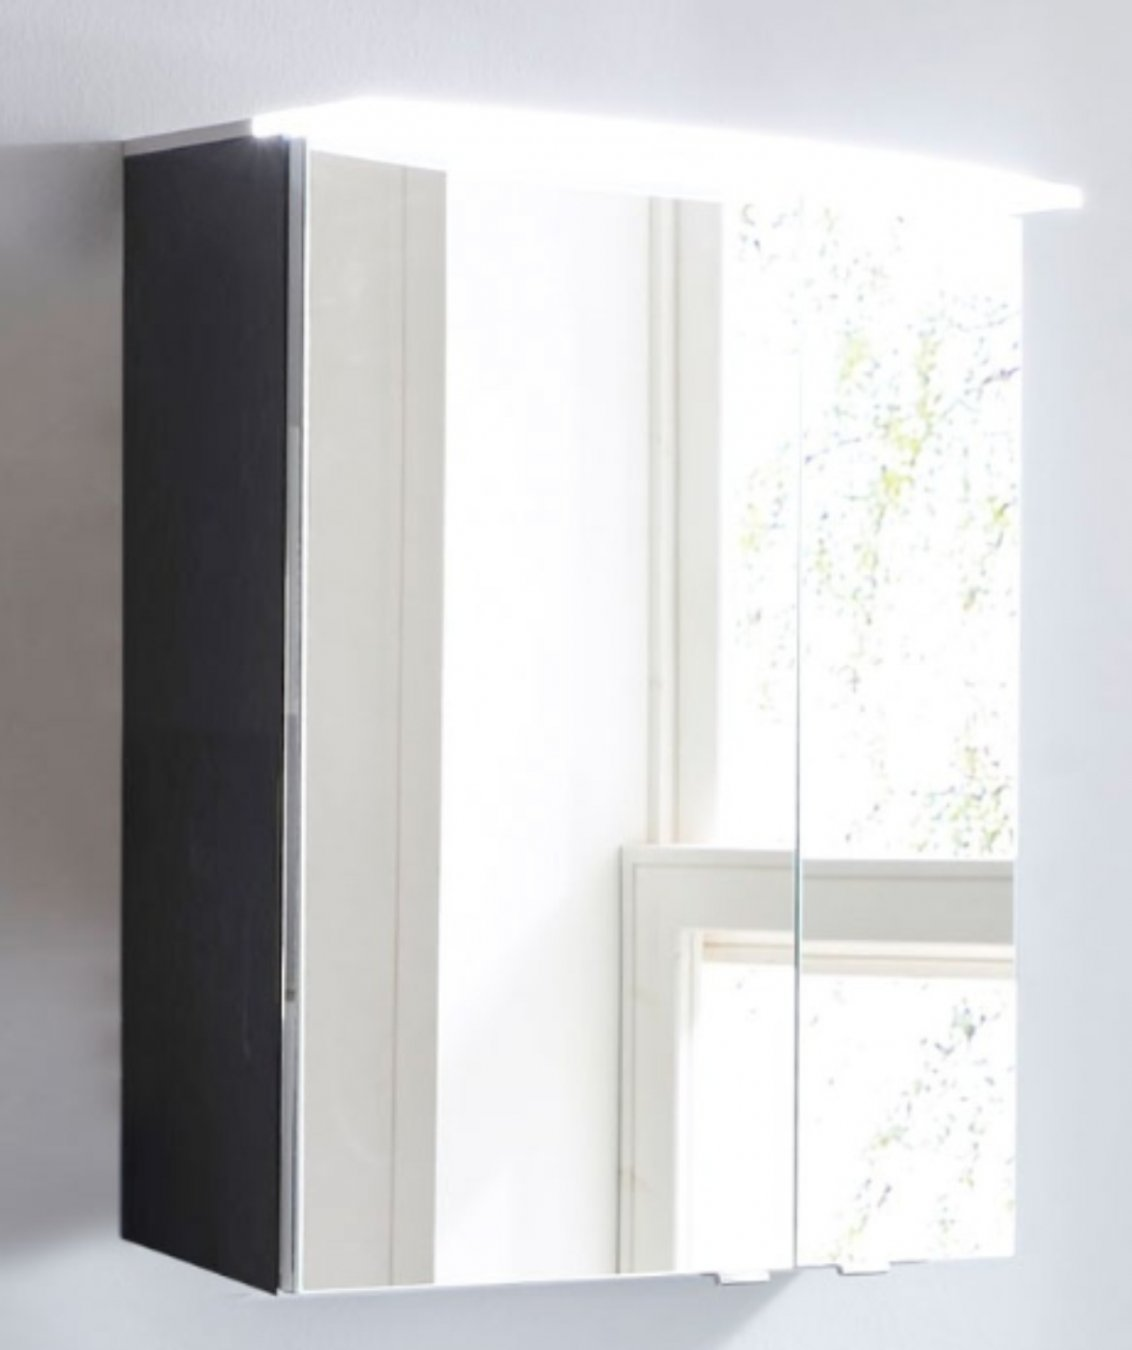 Marlin bad 3090 cosmo spiegelschrank 60 cm arcom center for Spiegelschrank bad 60 cm